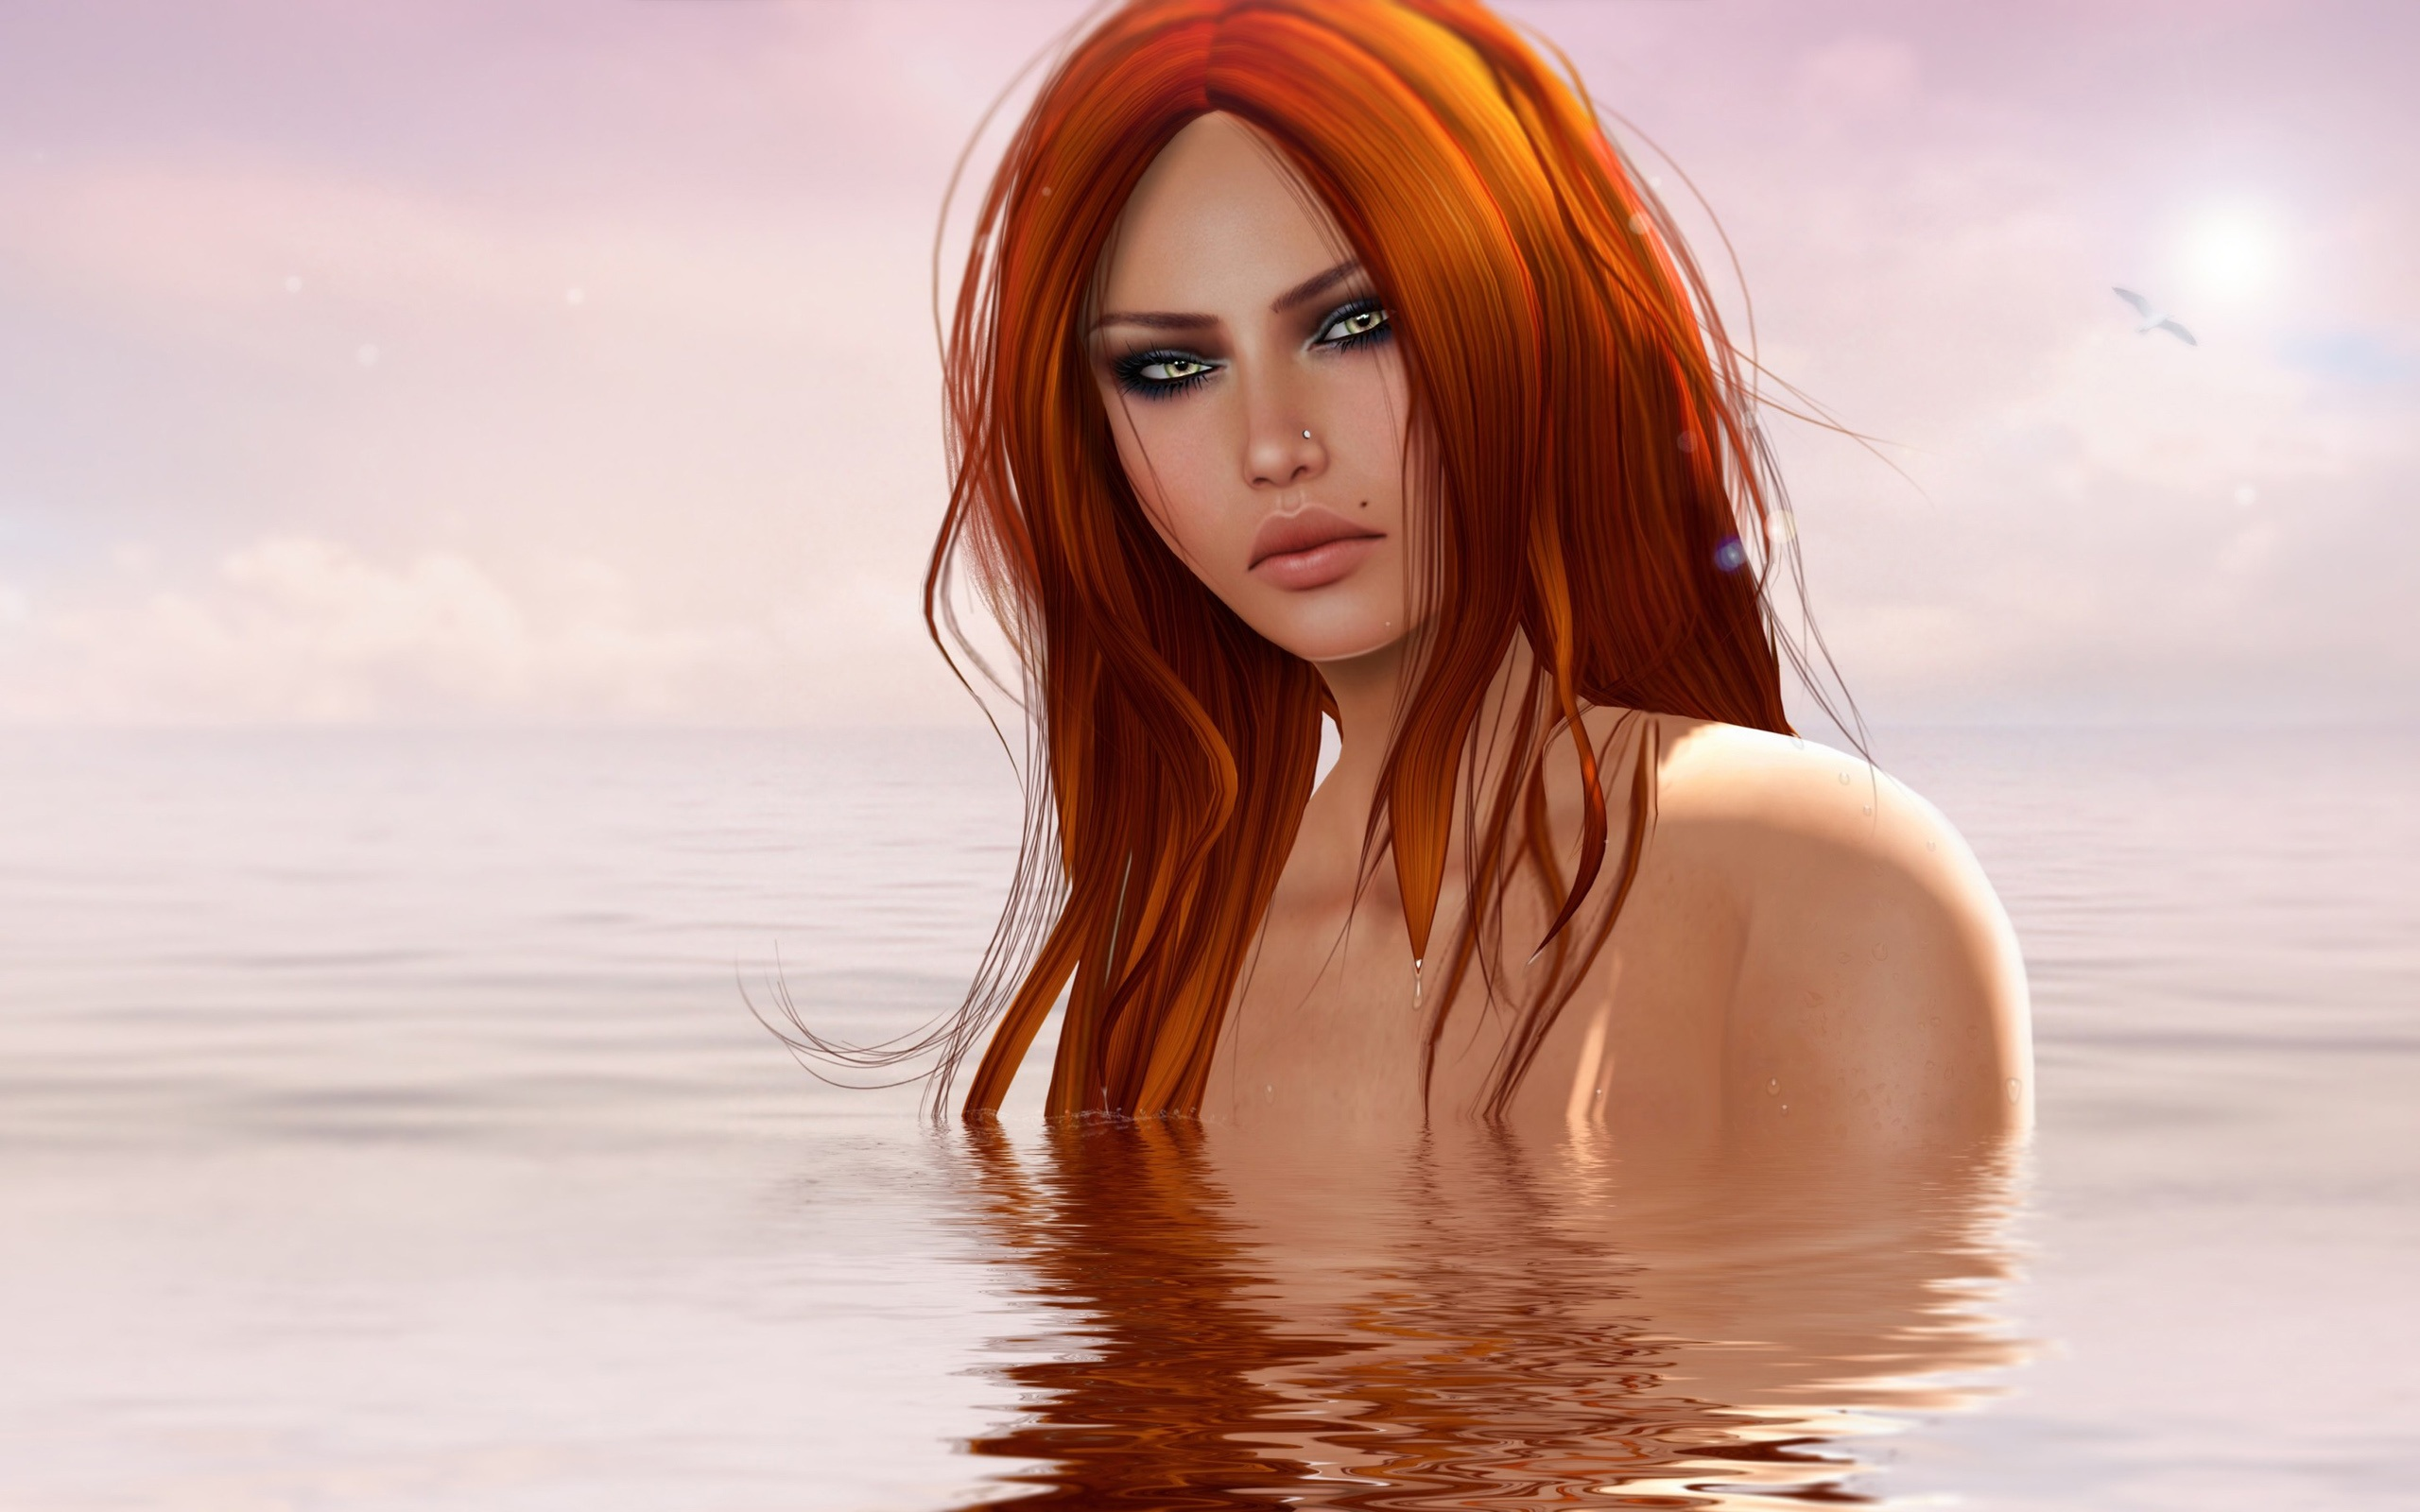 The red-haired fantasy girl in water Wallpaper - 2560x1600